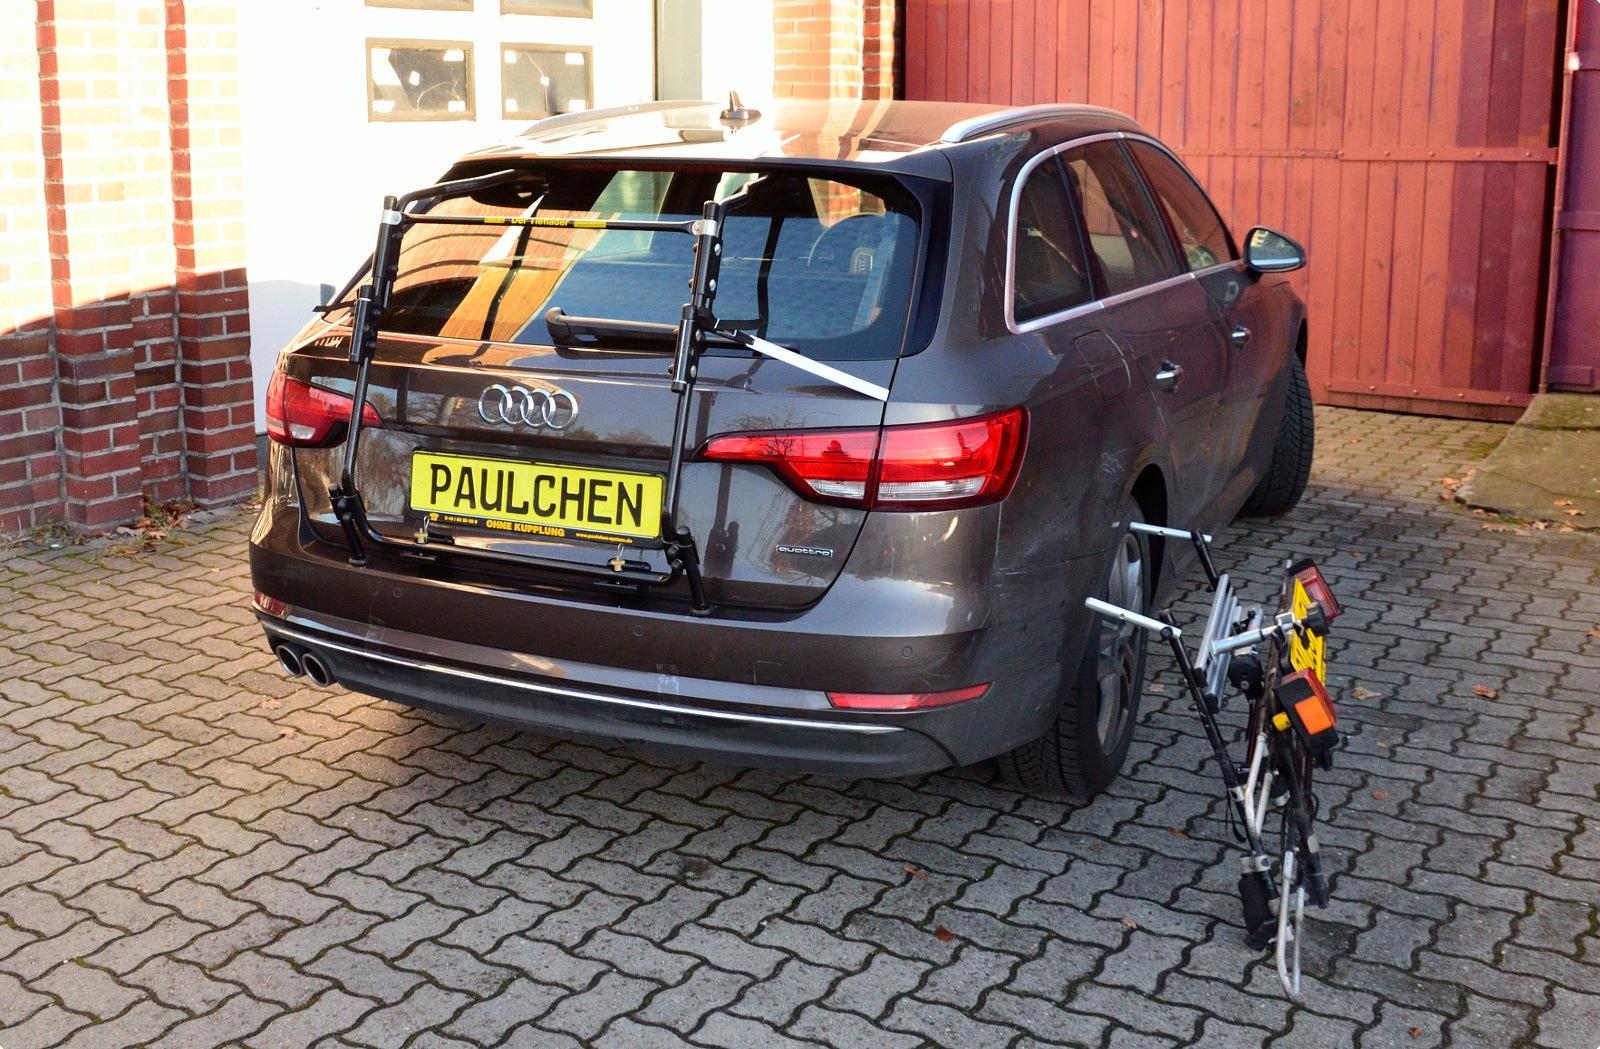 Bicycle Carrier For Audi A4 Avant B9 Paulchen Heckträger System